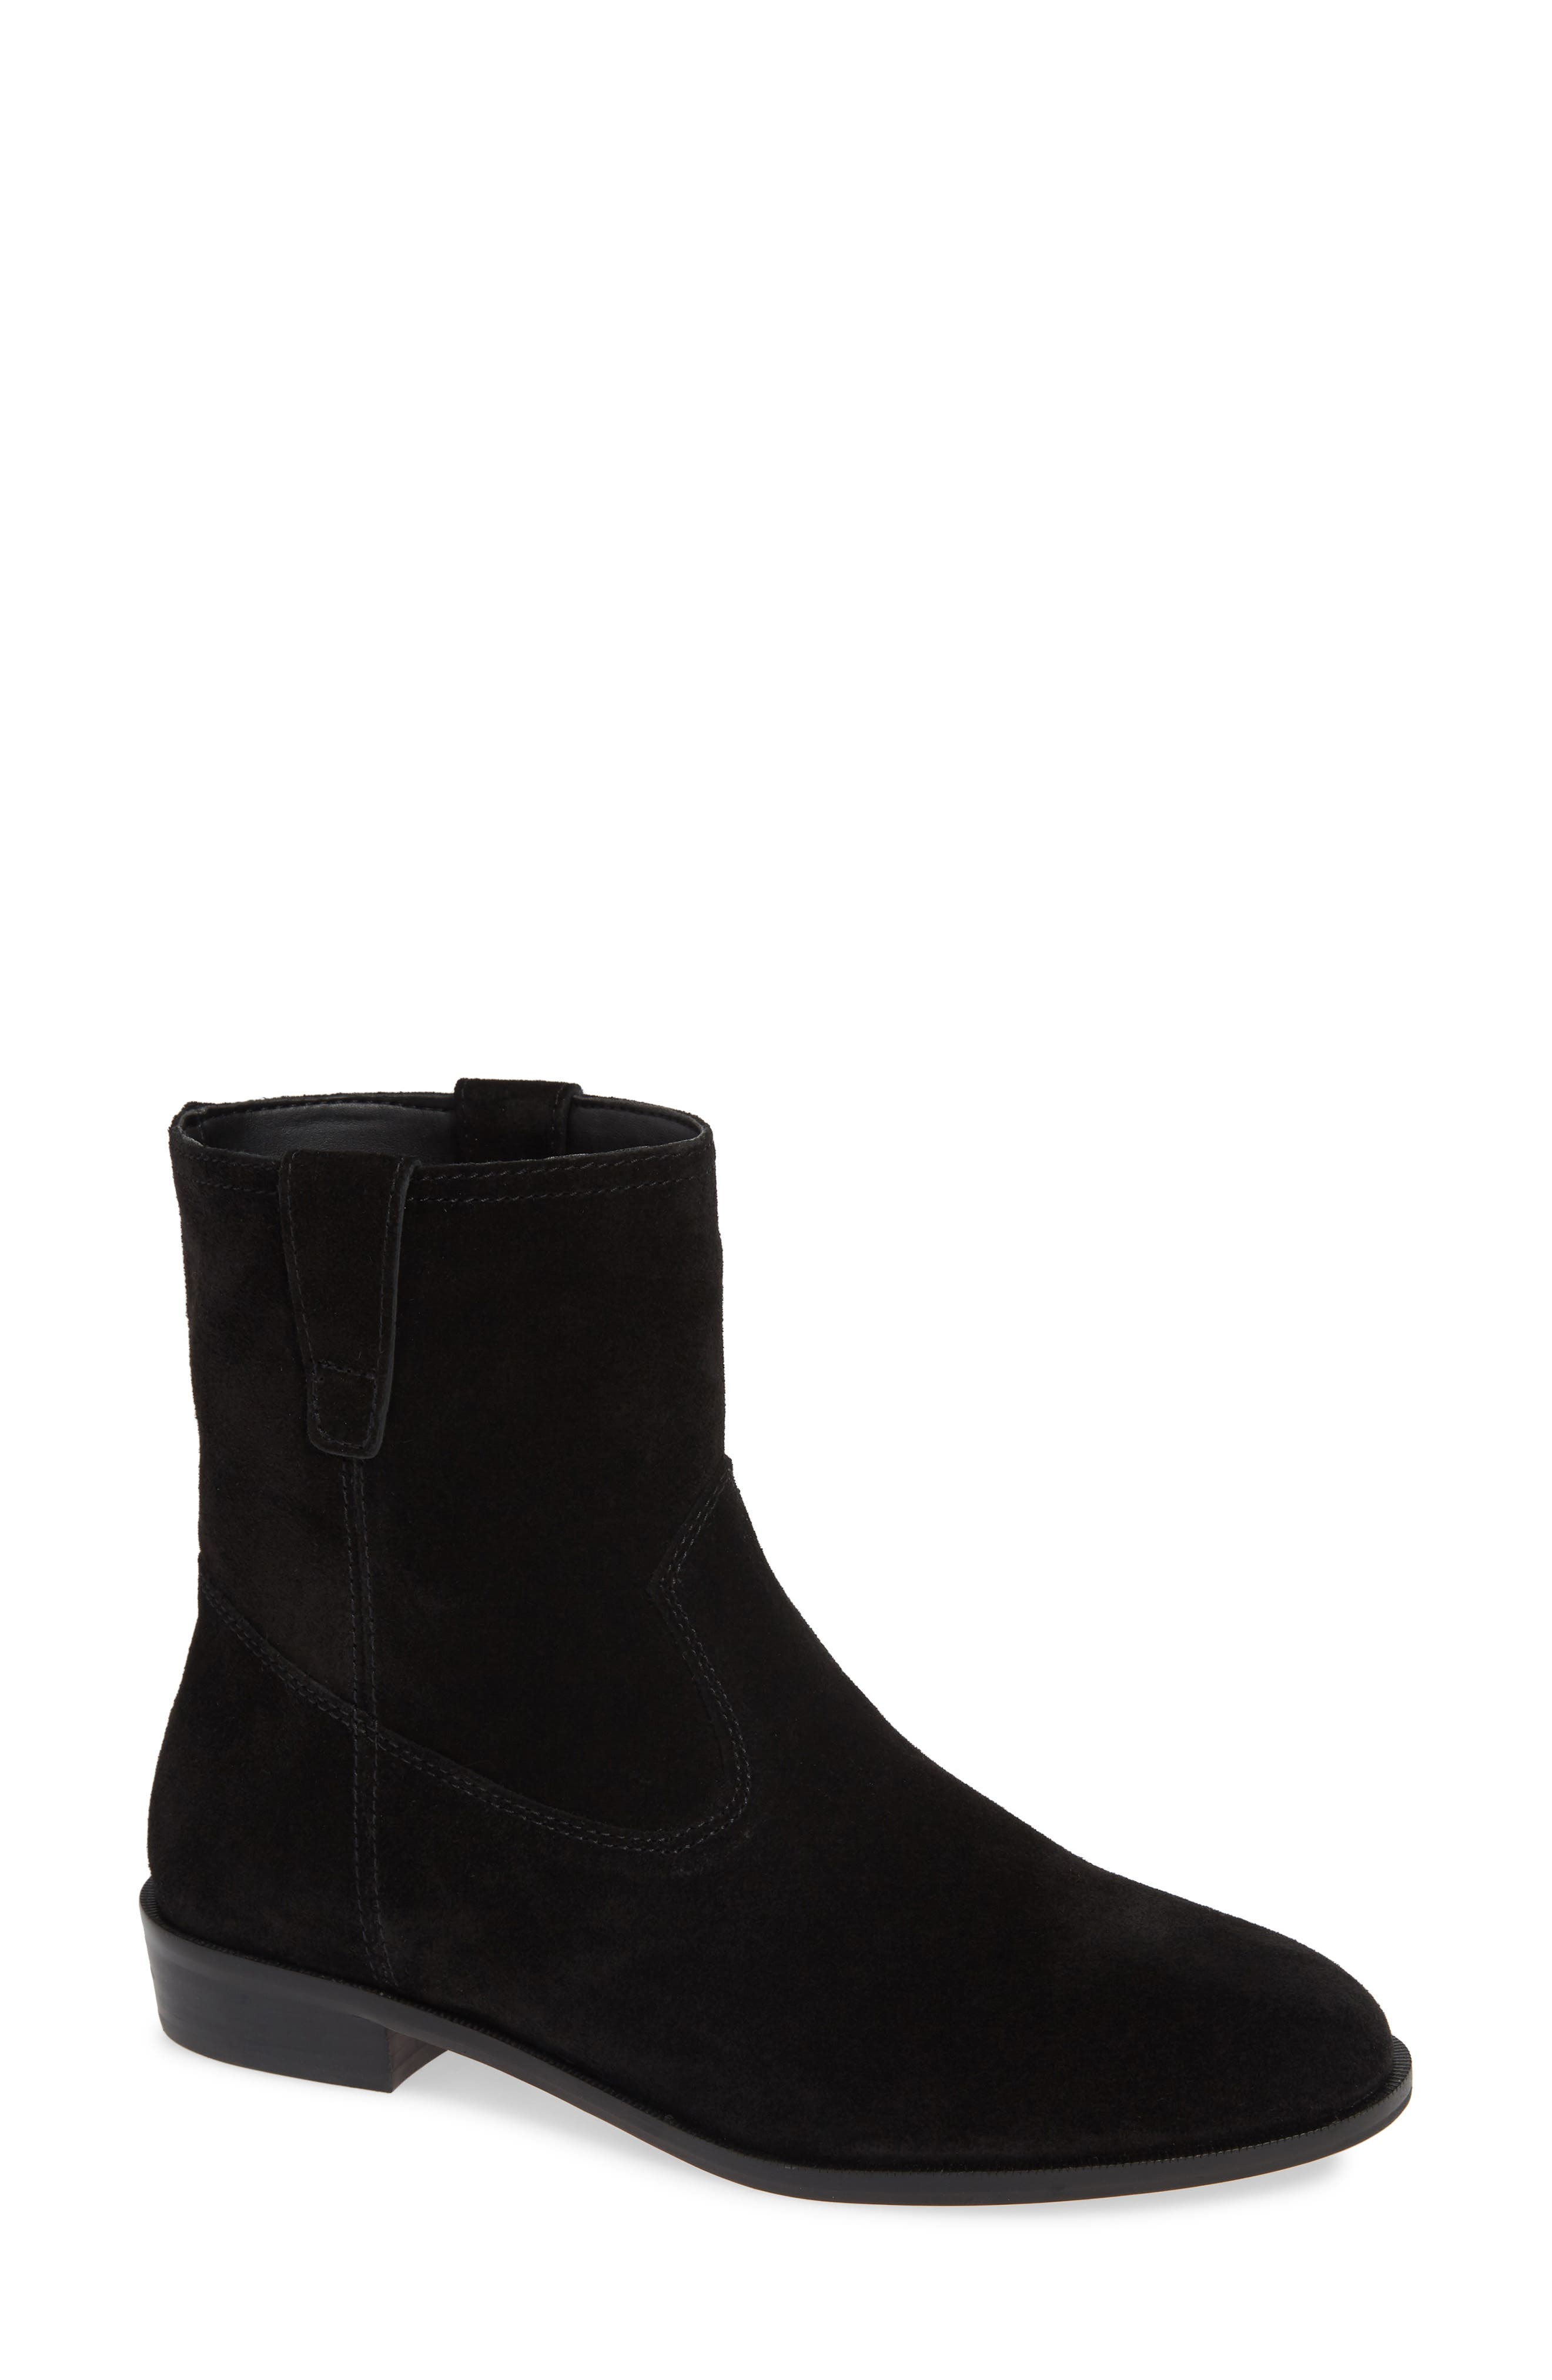 Chasidy Bootie,                         Main,                         color, BLACK SUEDE